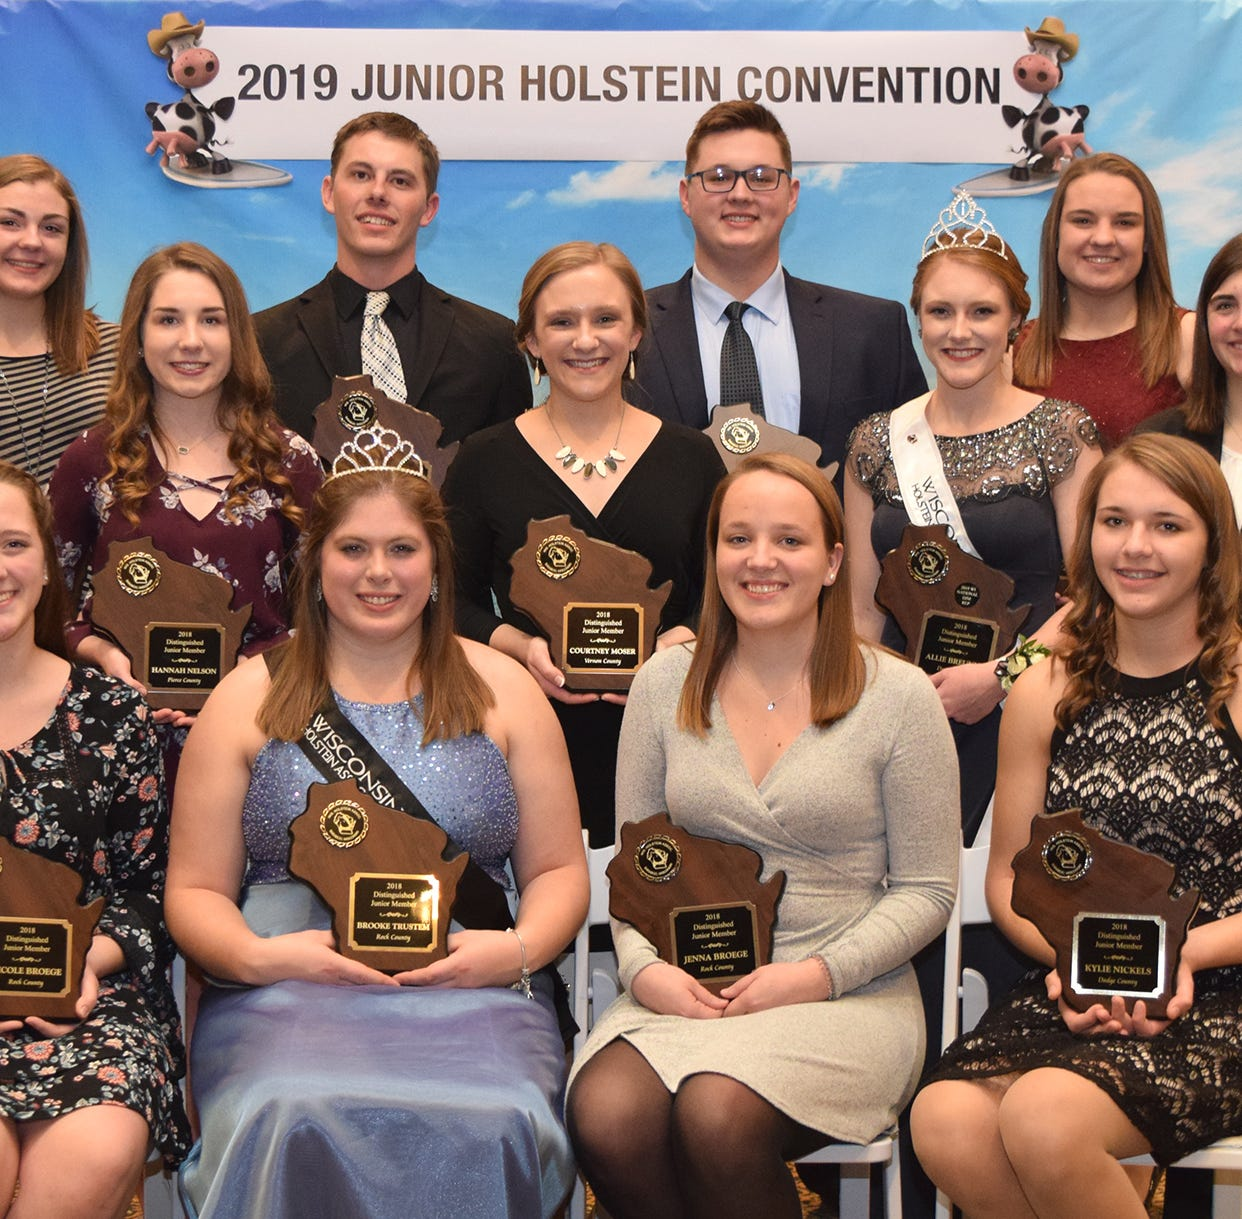 Wisconsin Holstein Juniors set sail at the 2019 Junior Holstein Convention